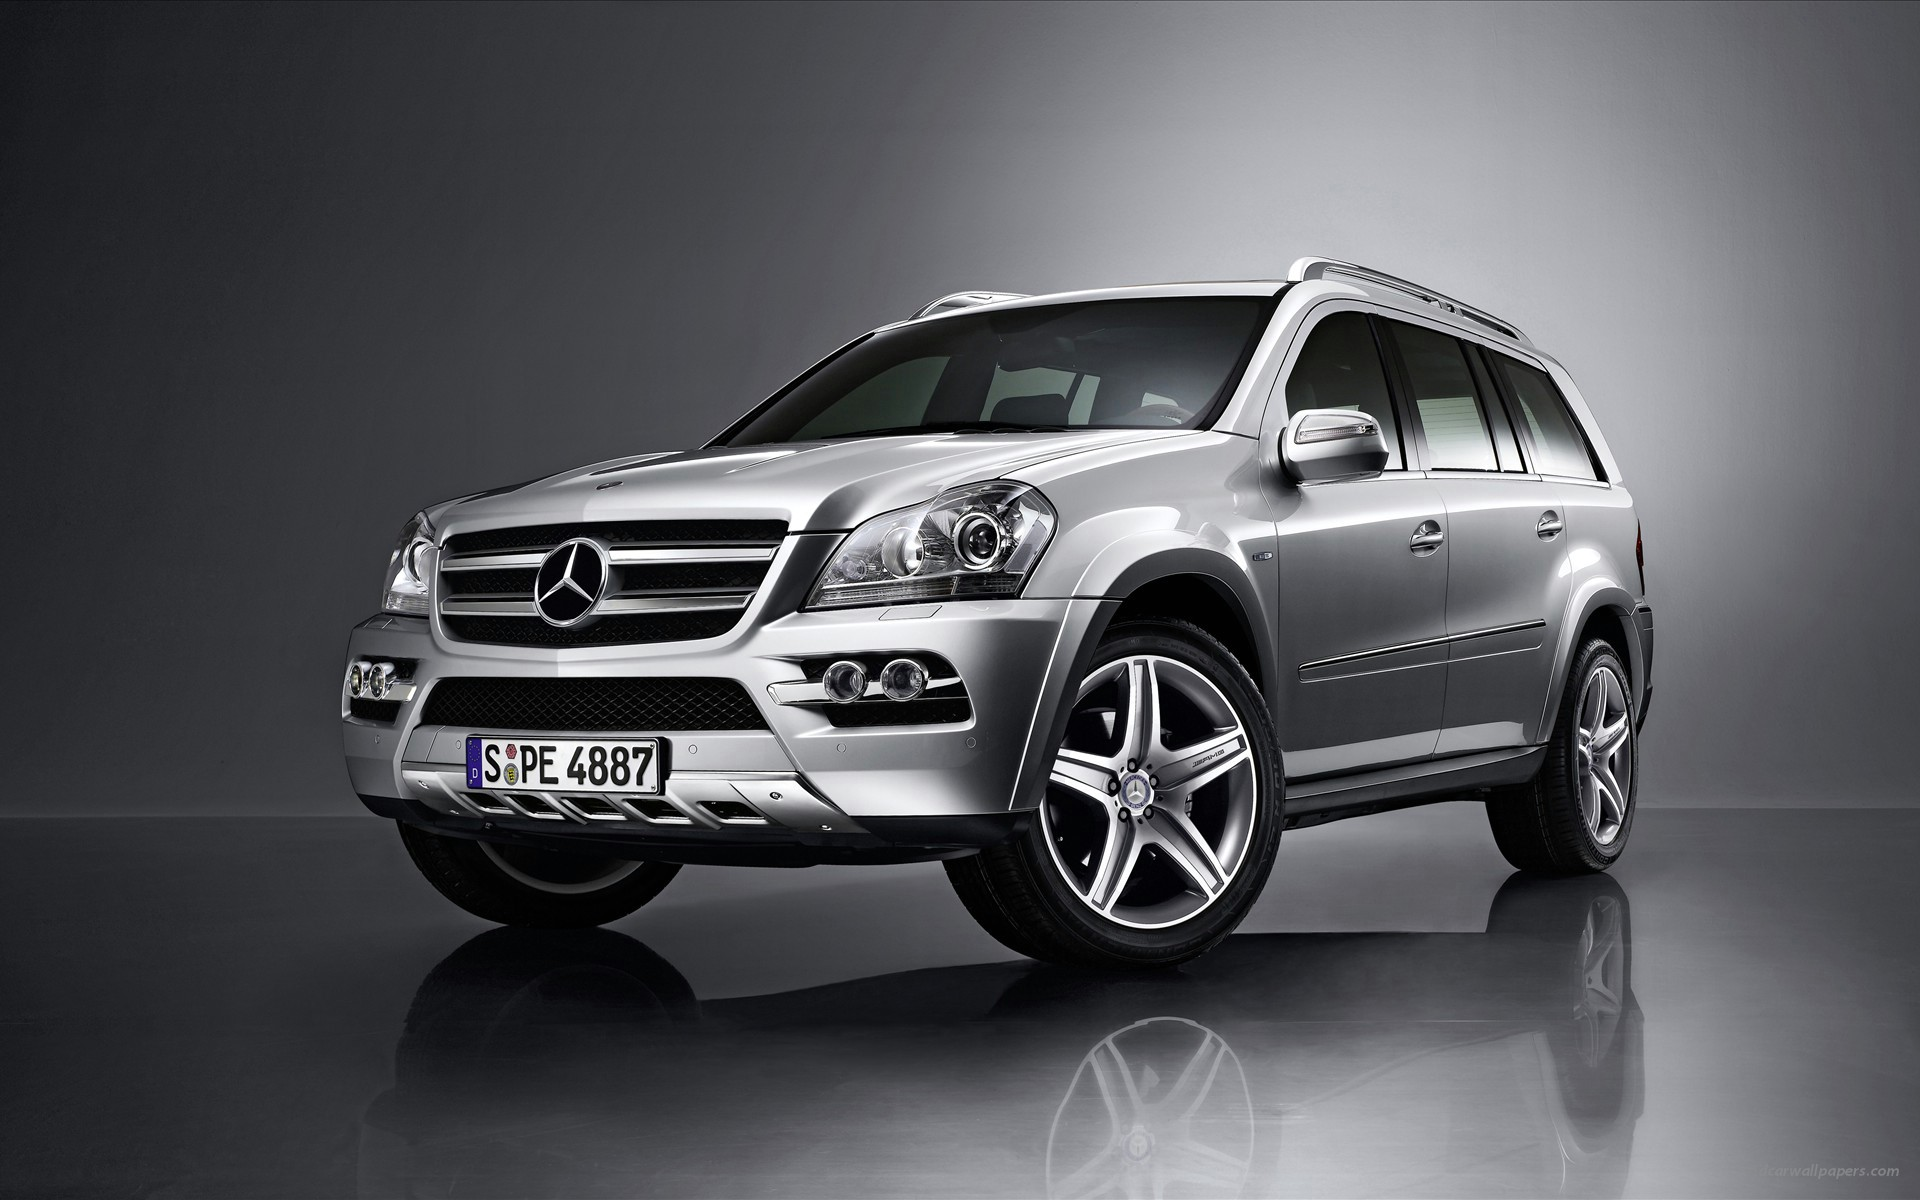 2009 Mercedes Benz SUV Wallpapers HD Wallpapers 1920x1200